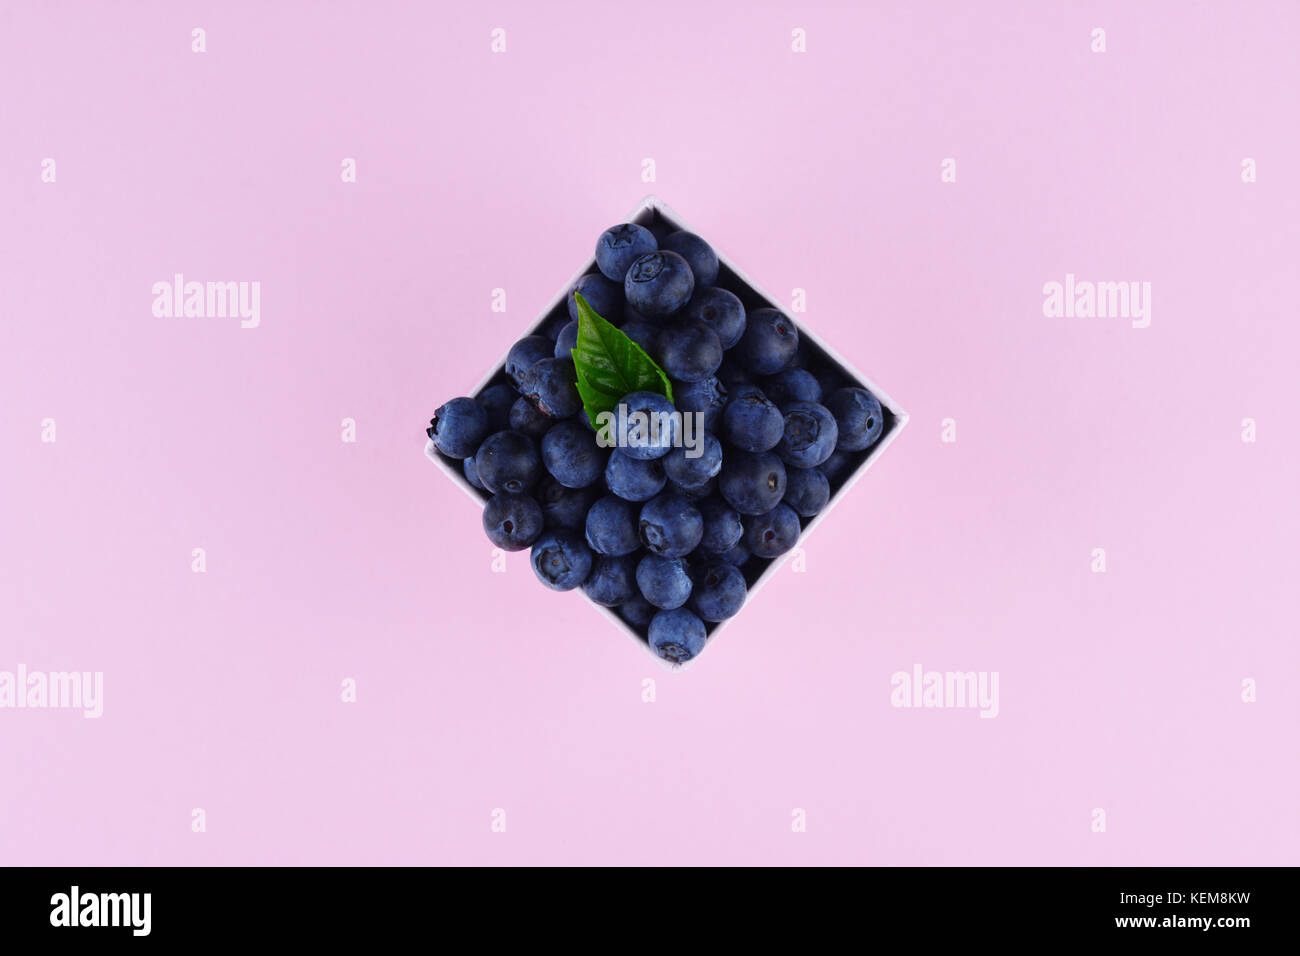 Ripe and juicy fresh picked blueberries on pink trendy background. Flat lay style. - Stock Image